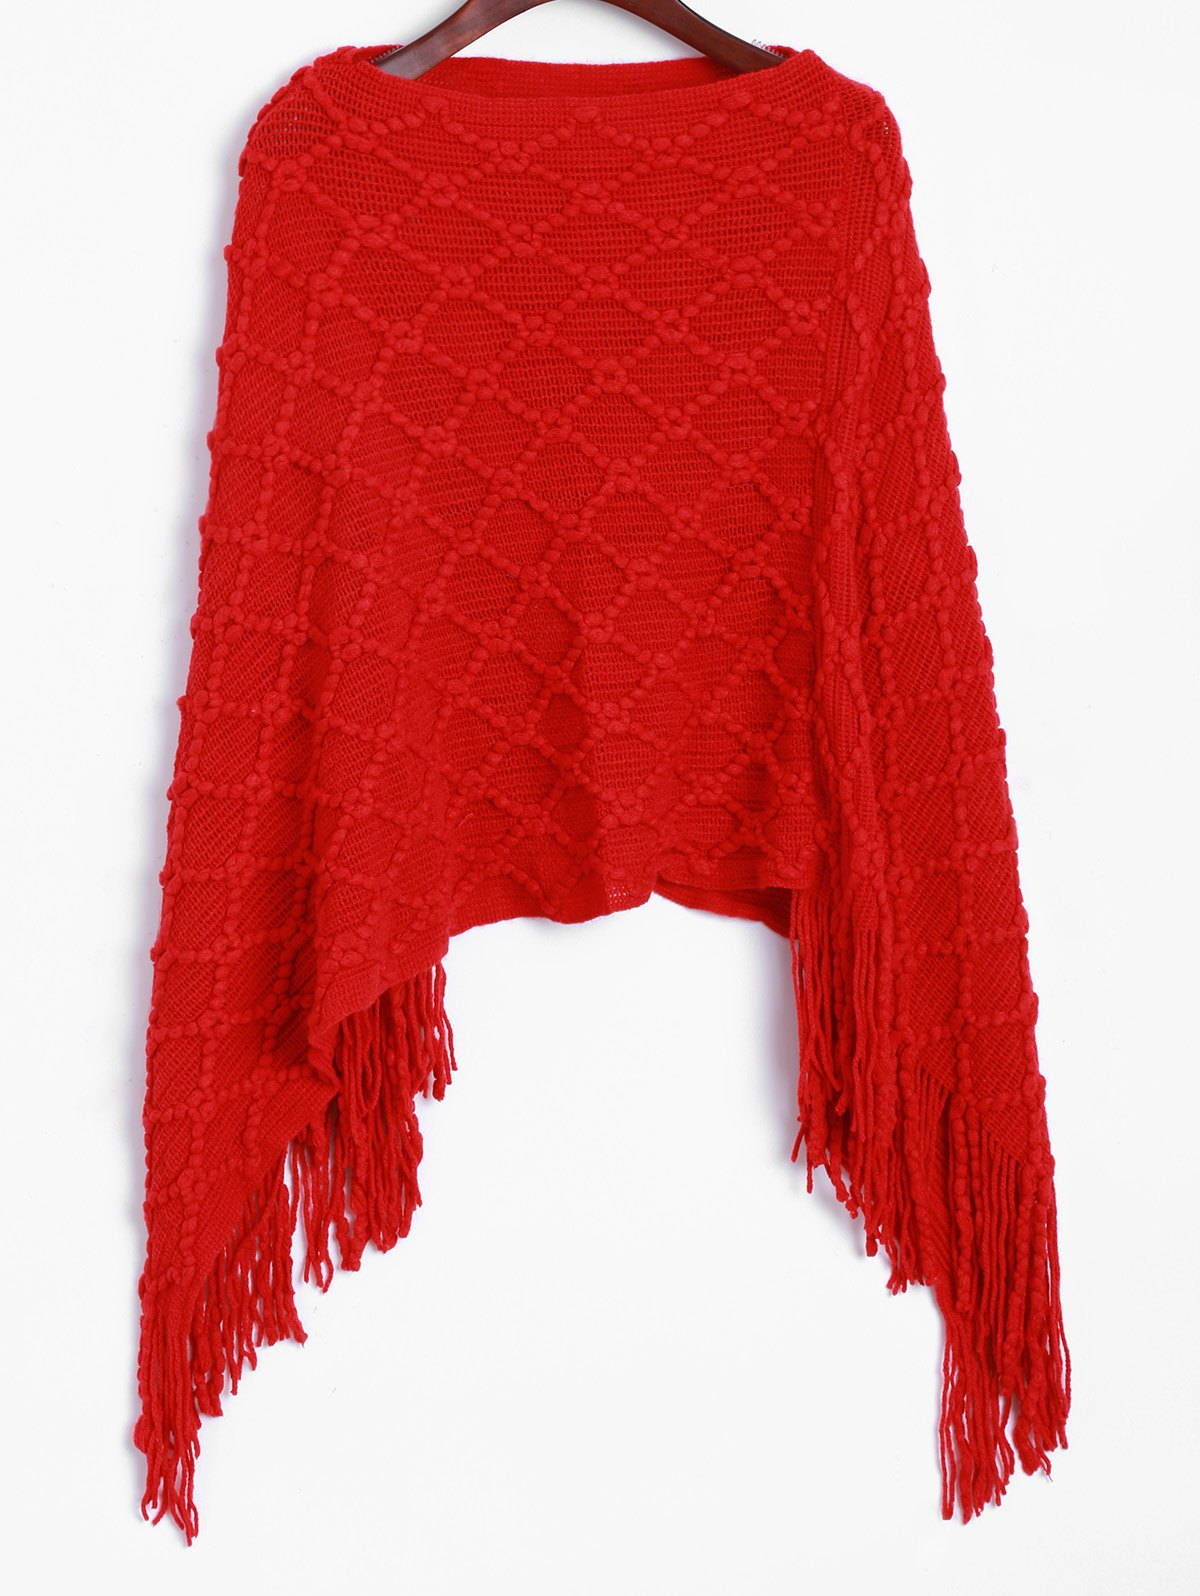 Asymmetrical Fringed Poncho SweaterWomen<br><br><br>Size: ONE SIZE<br>Color: RED